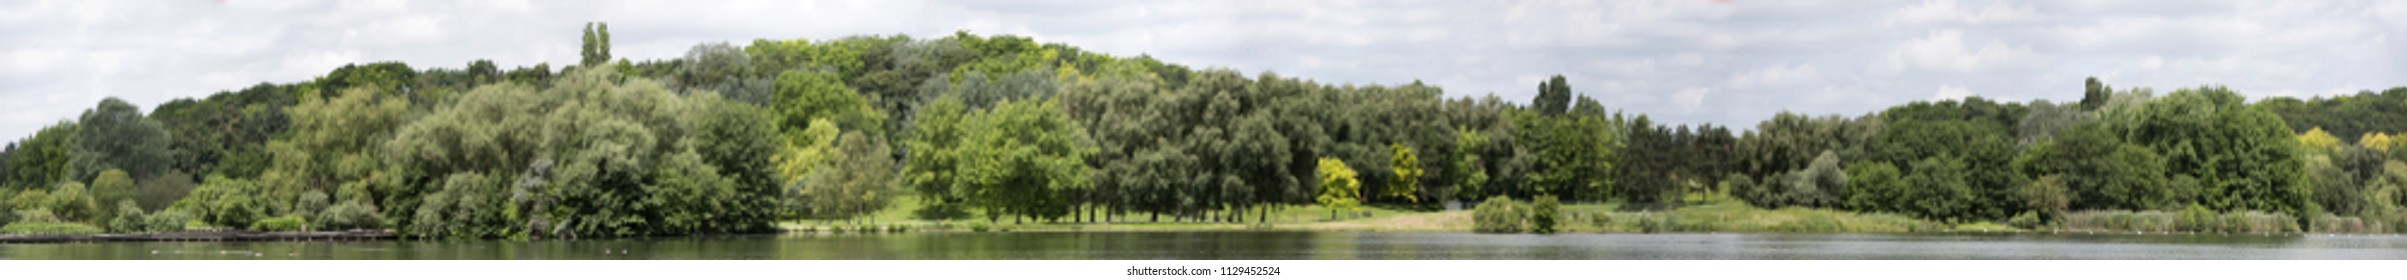 View of a Very high definition Treeline with a colorful blue sky